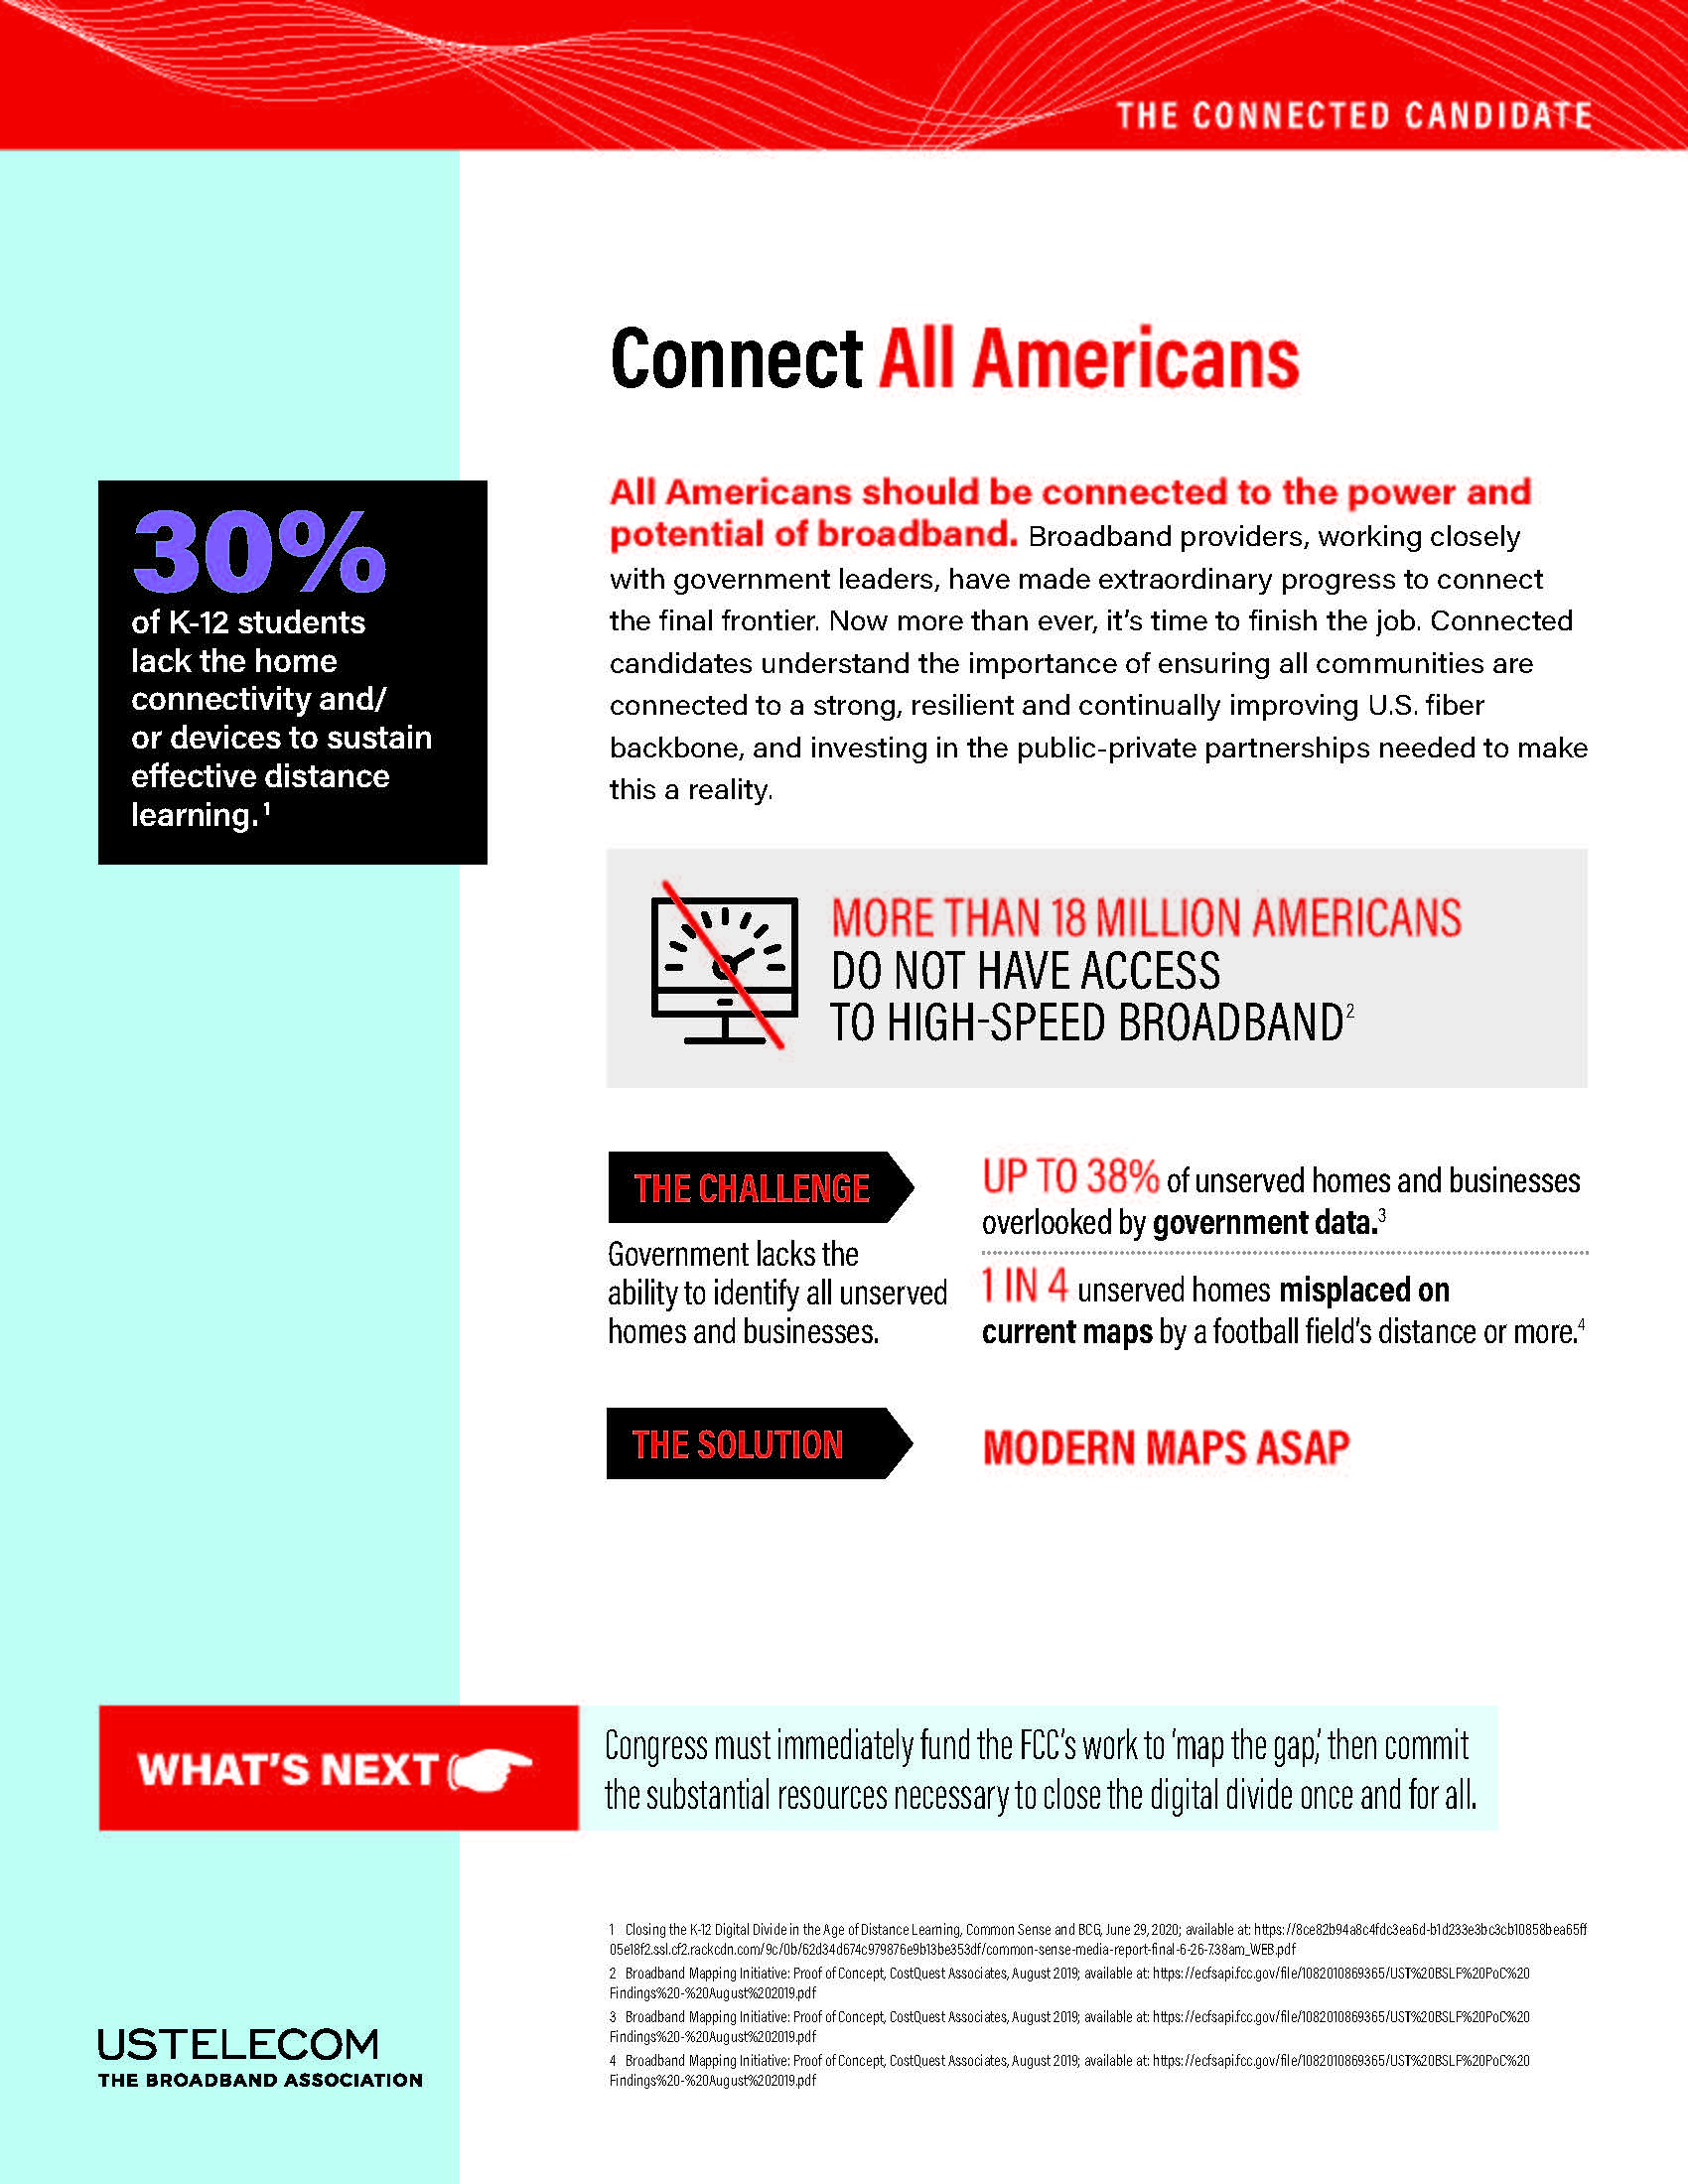 Roadmap To A Connected America: Connect All Americans